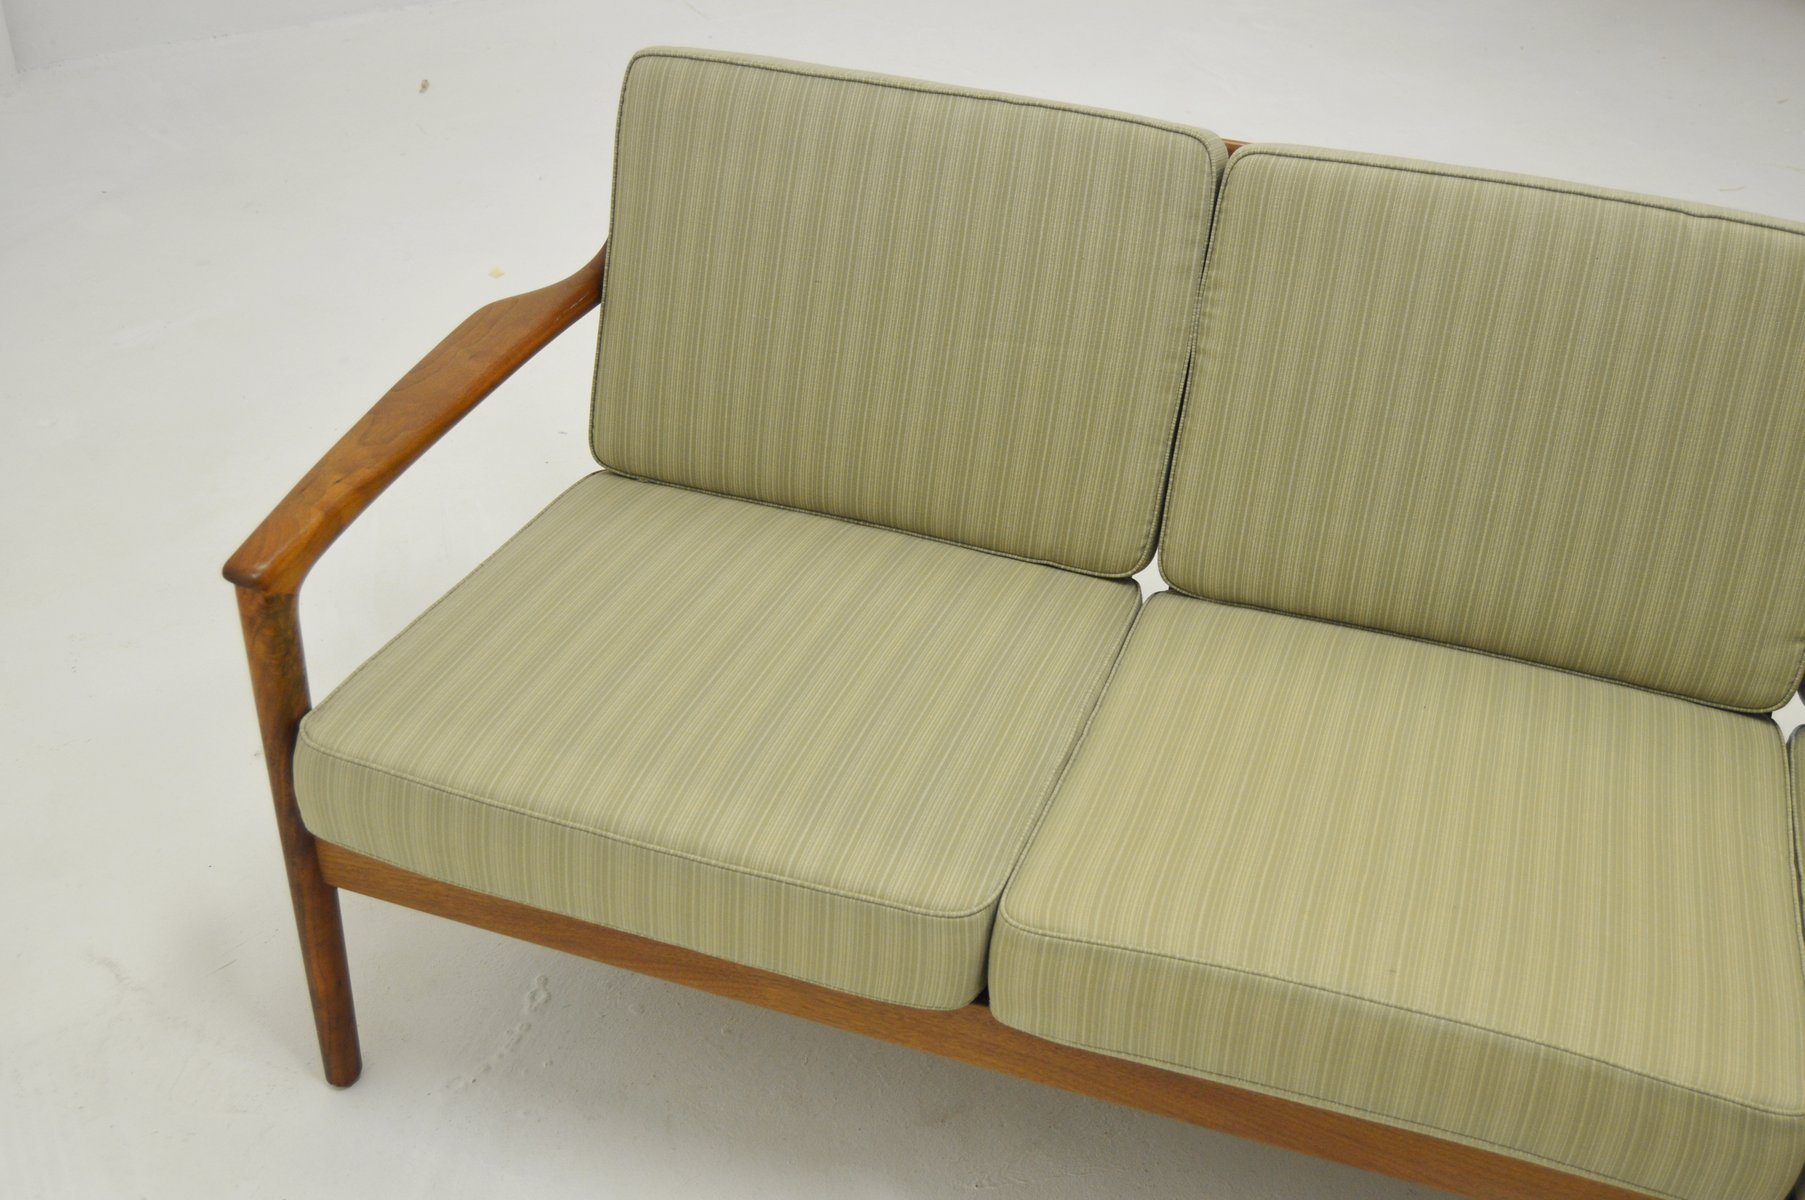 dux sofa by folke ohlsson modern for living room usa 75 1963 sale at pamono